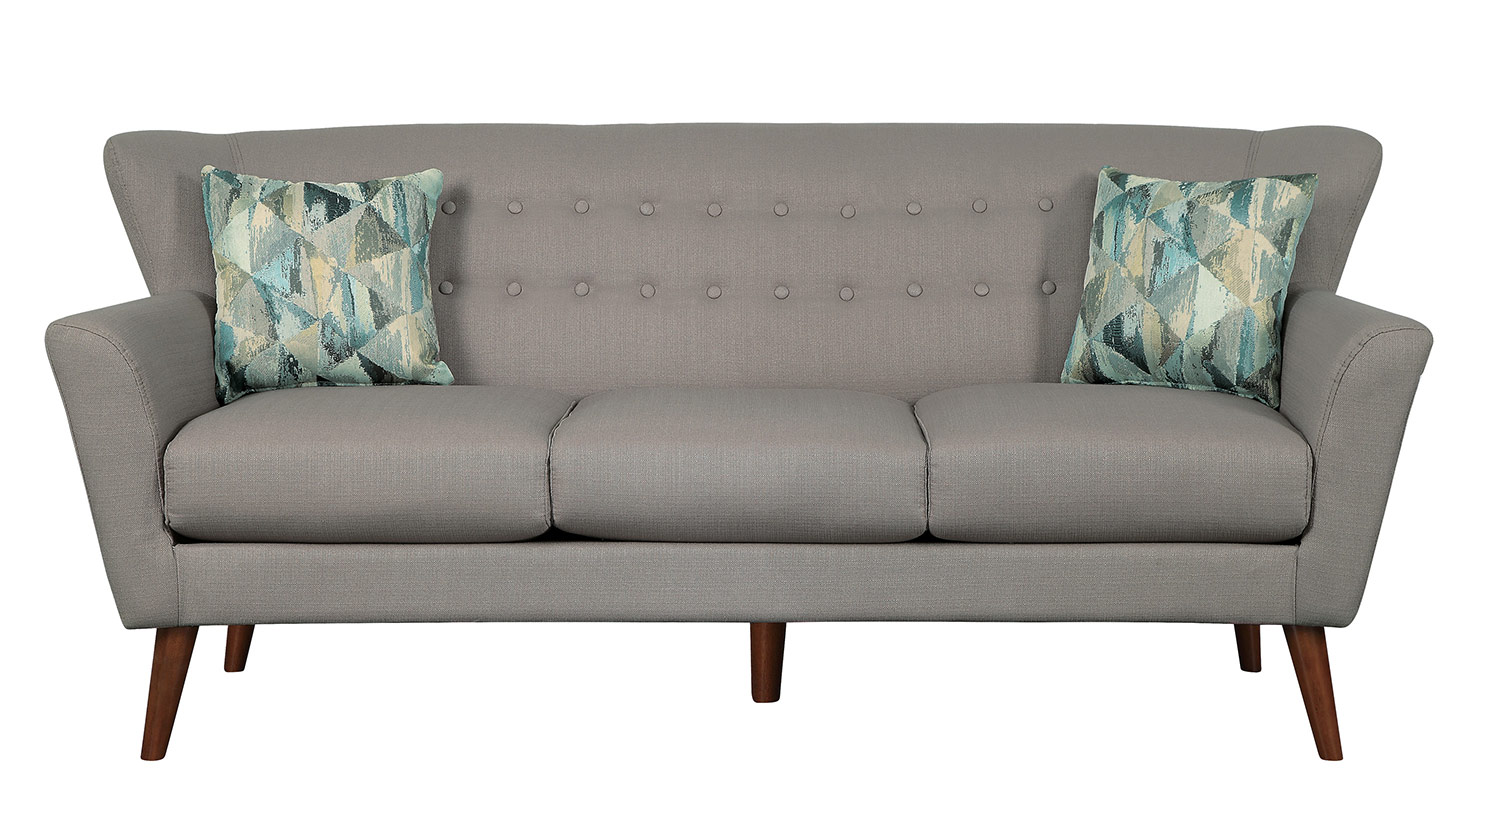 Homelegance Maja Sofa - Gray